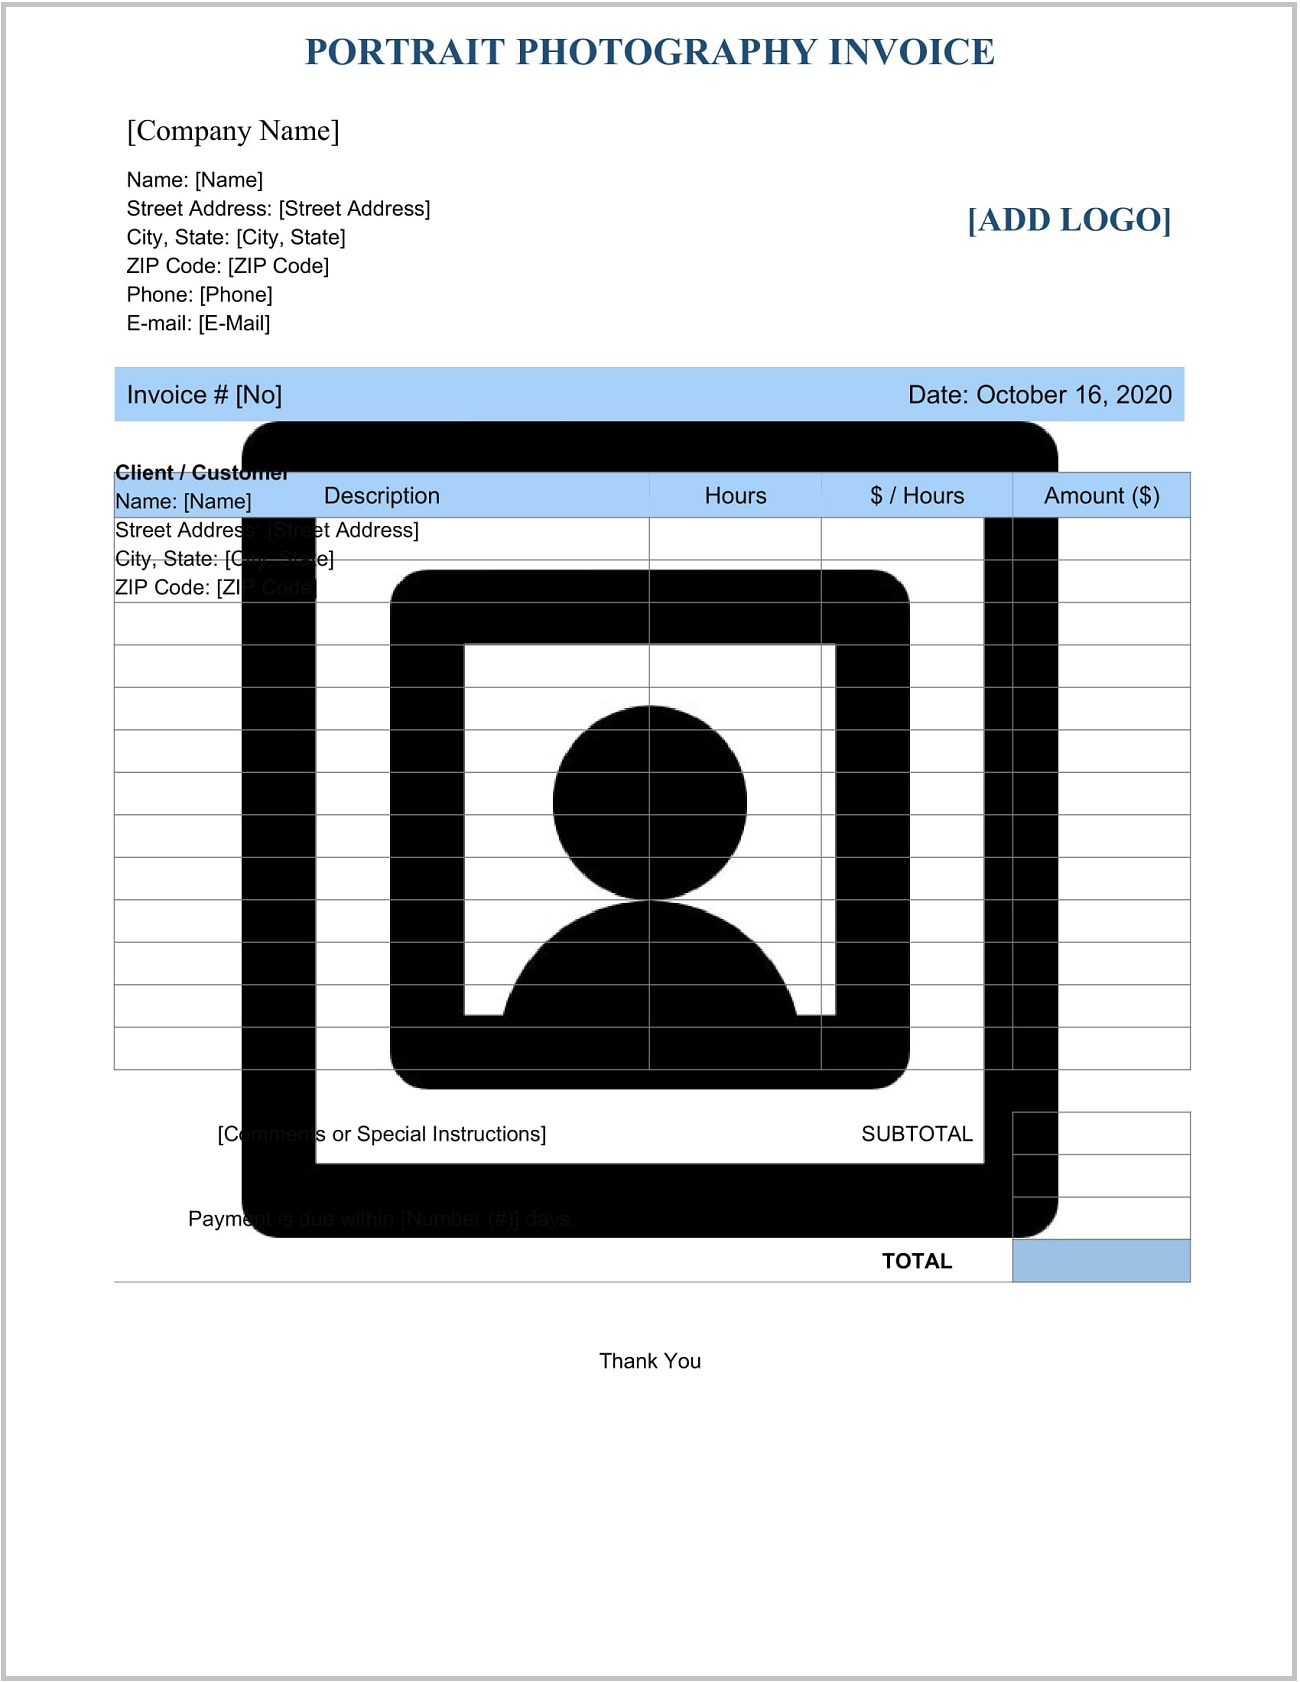 Portrait Photography Invoice Template Word Form